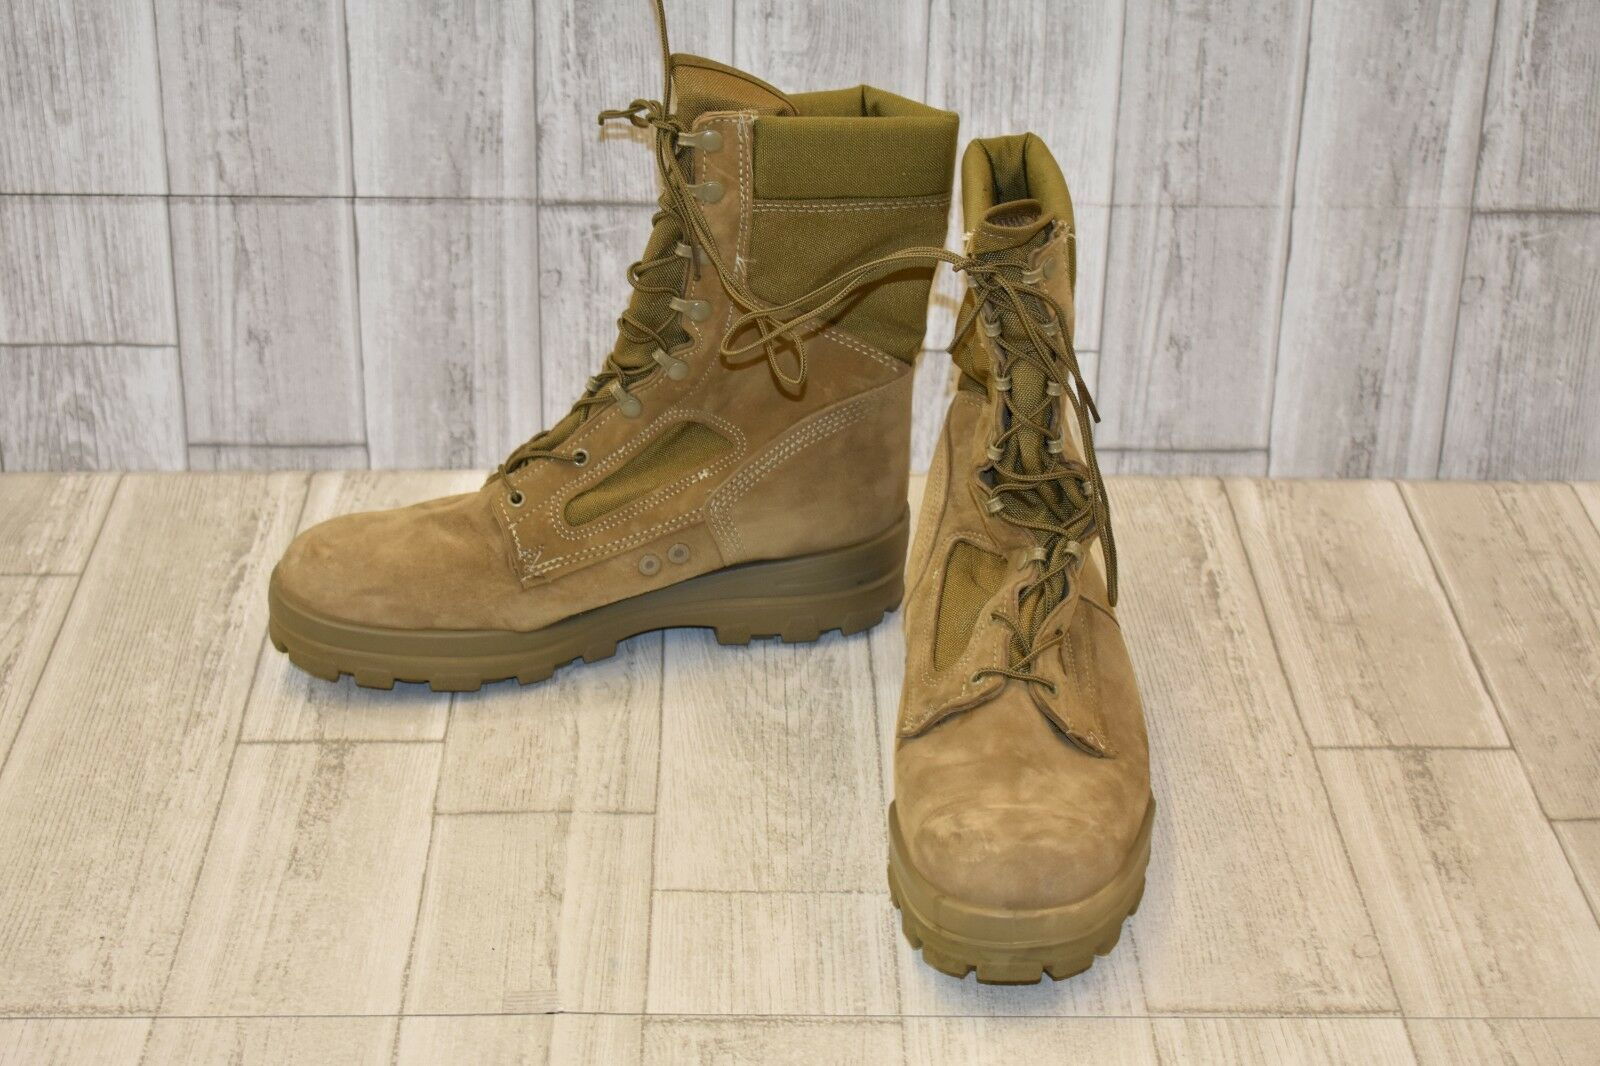 Bates M-8 Weather Boots, Men's Size 13 EW, Olive Mohave